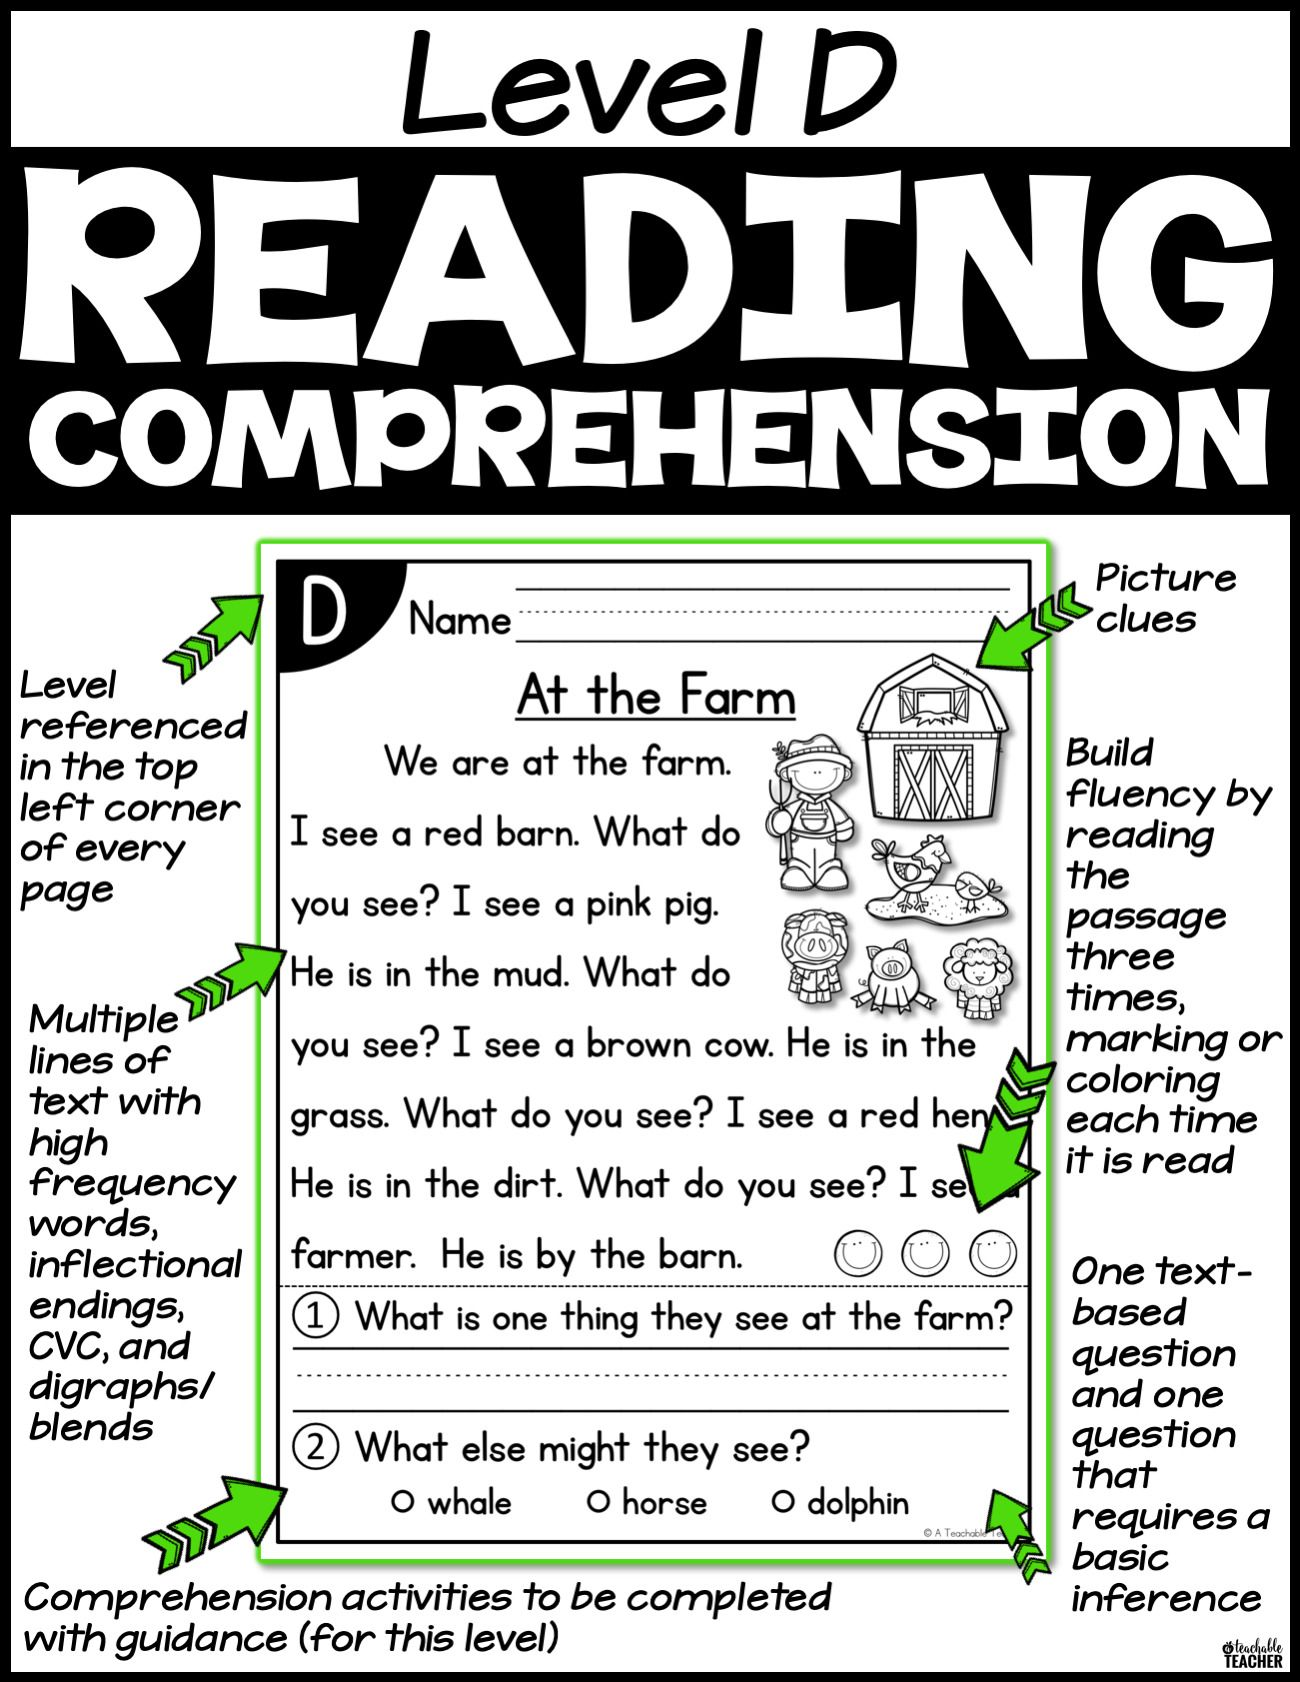 Level D Reading Comprehension Passages And Questions With